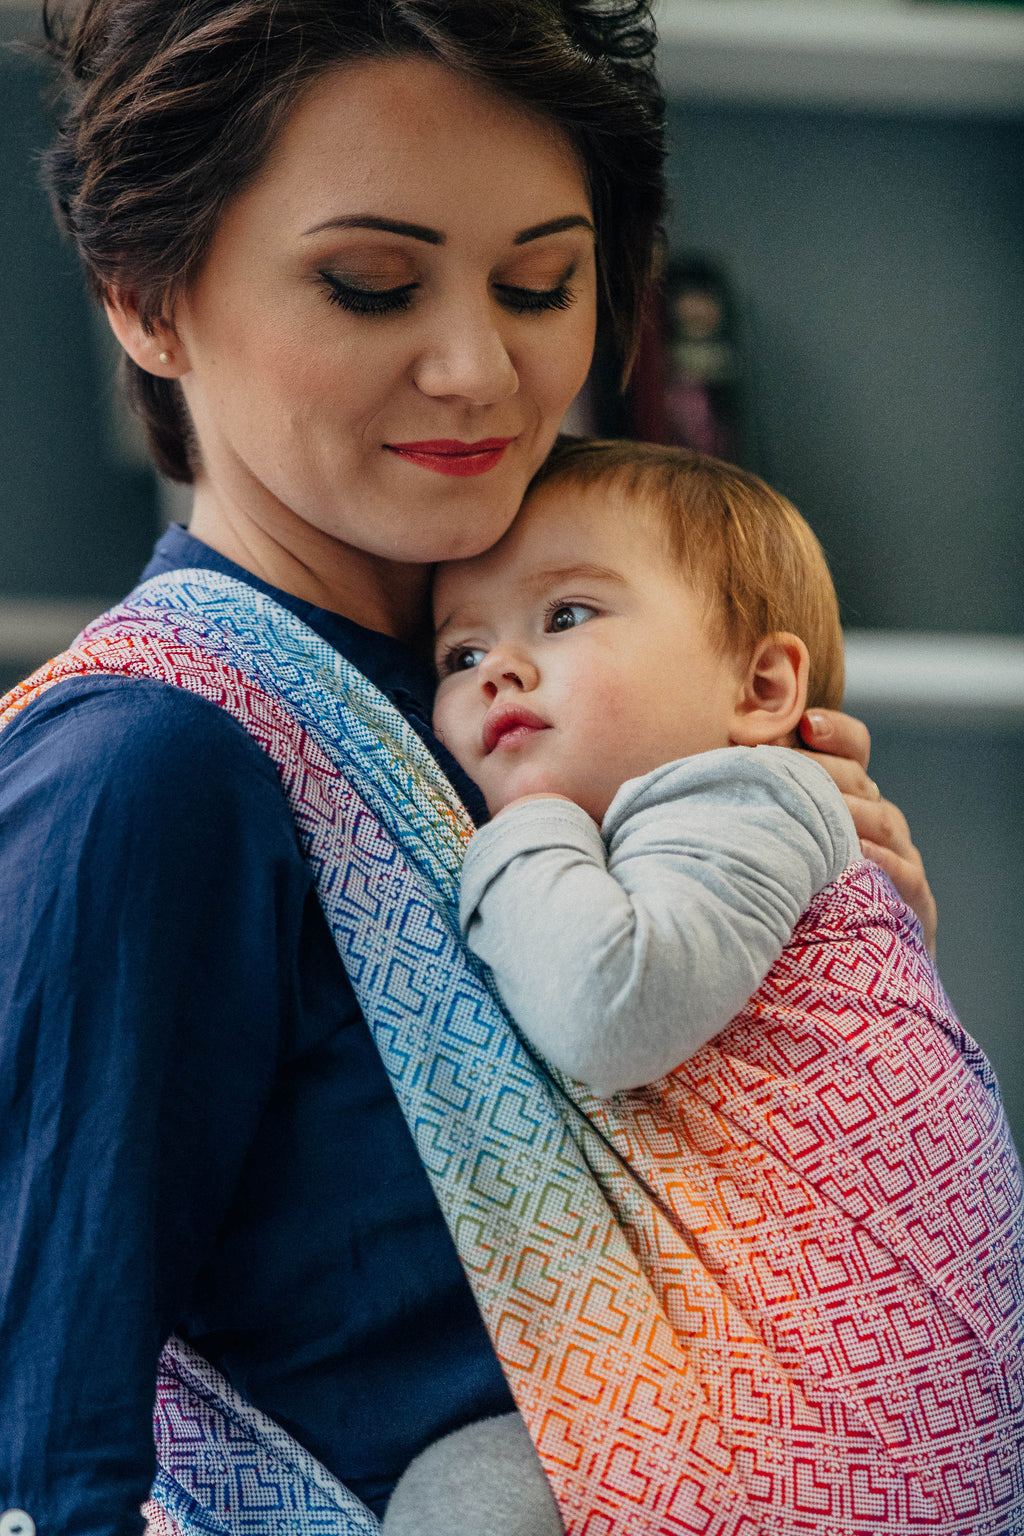 Lenny Lamb Woven Wrap - Big Love Rainbow - 4.2m only - Slings and Things